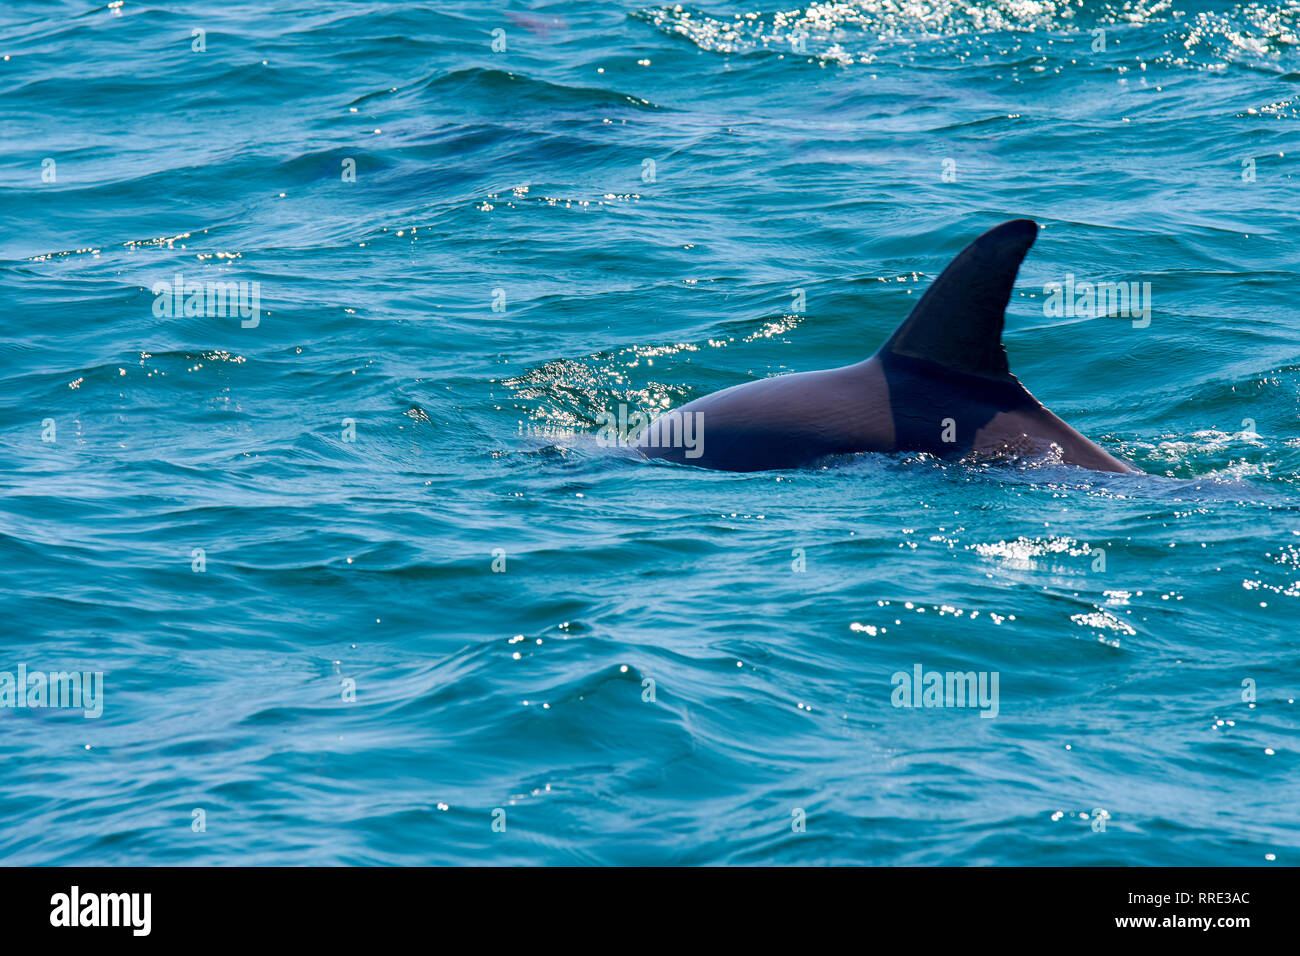 Dolphin floating, jumping and diving in the blue sea with waves Stock Photo